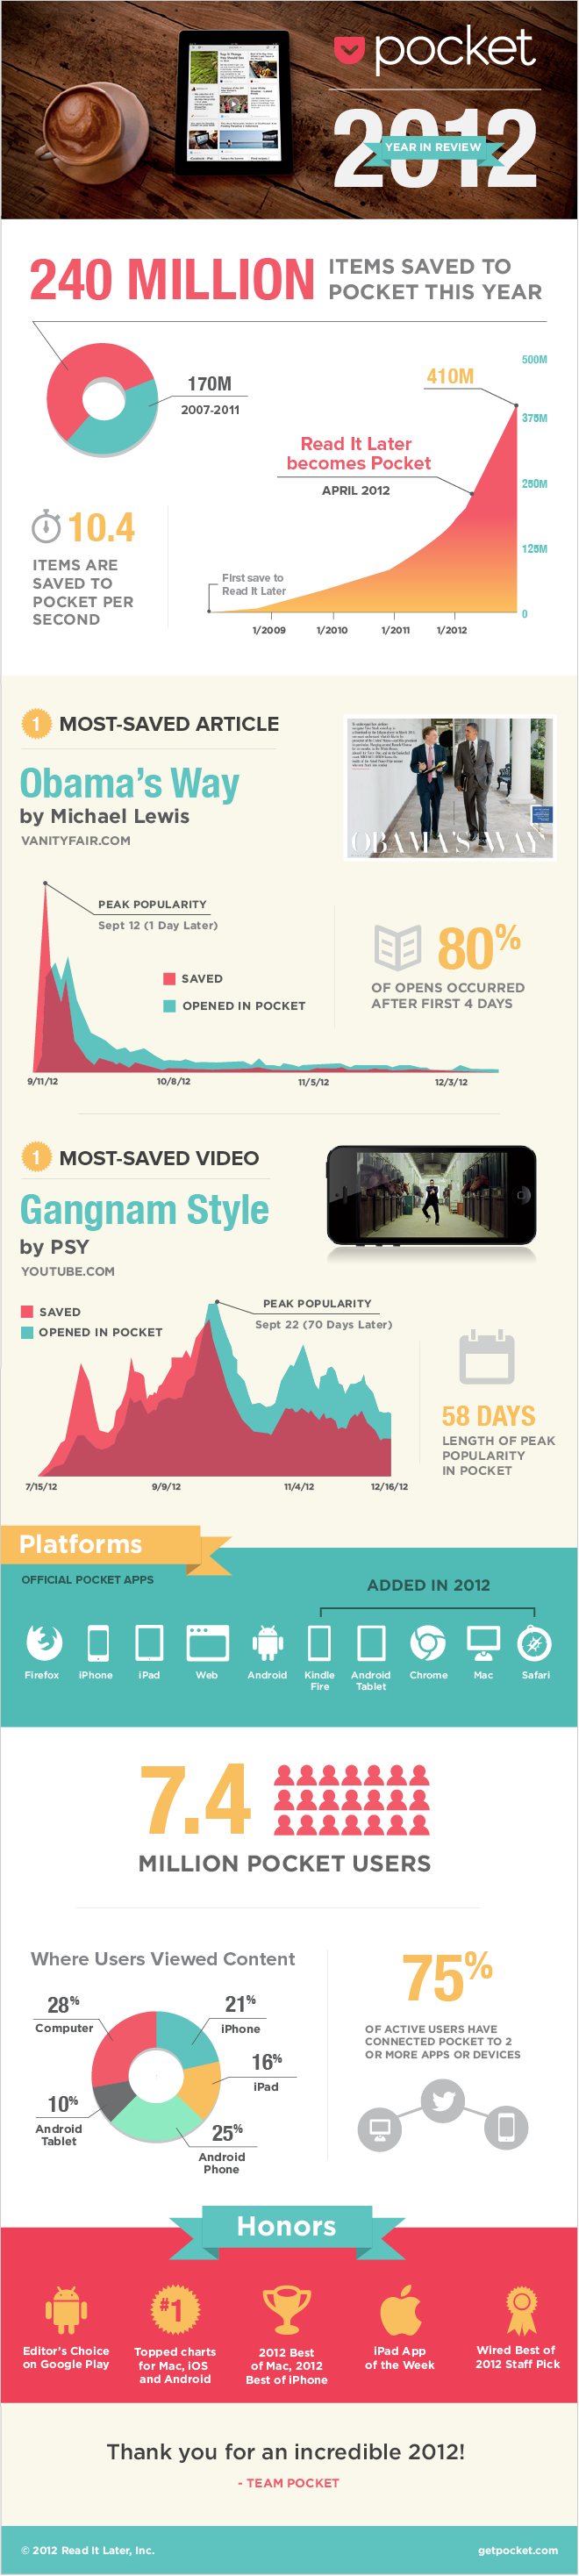 Pocket 2012YearInReview With 7.4 million users and 240 million saves, Pocket breaks down its most popular content of 2012